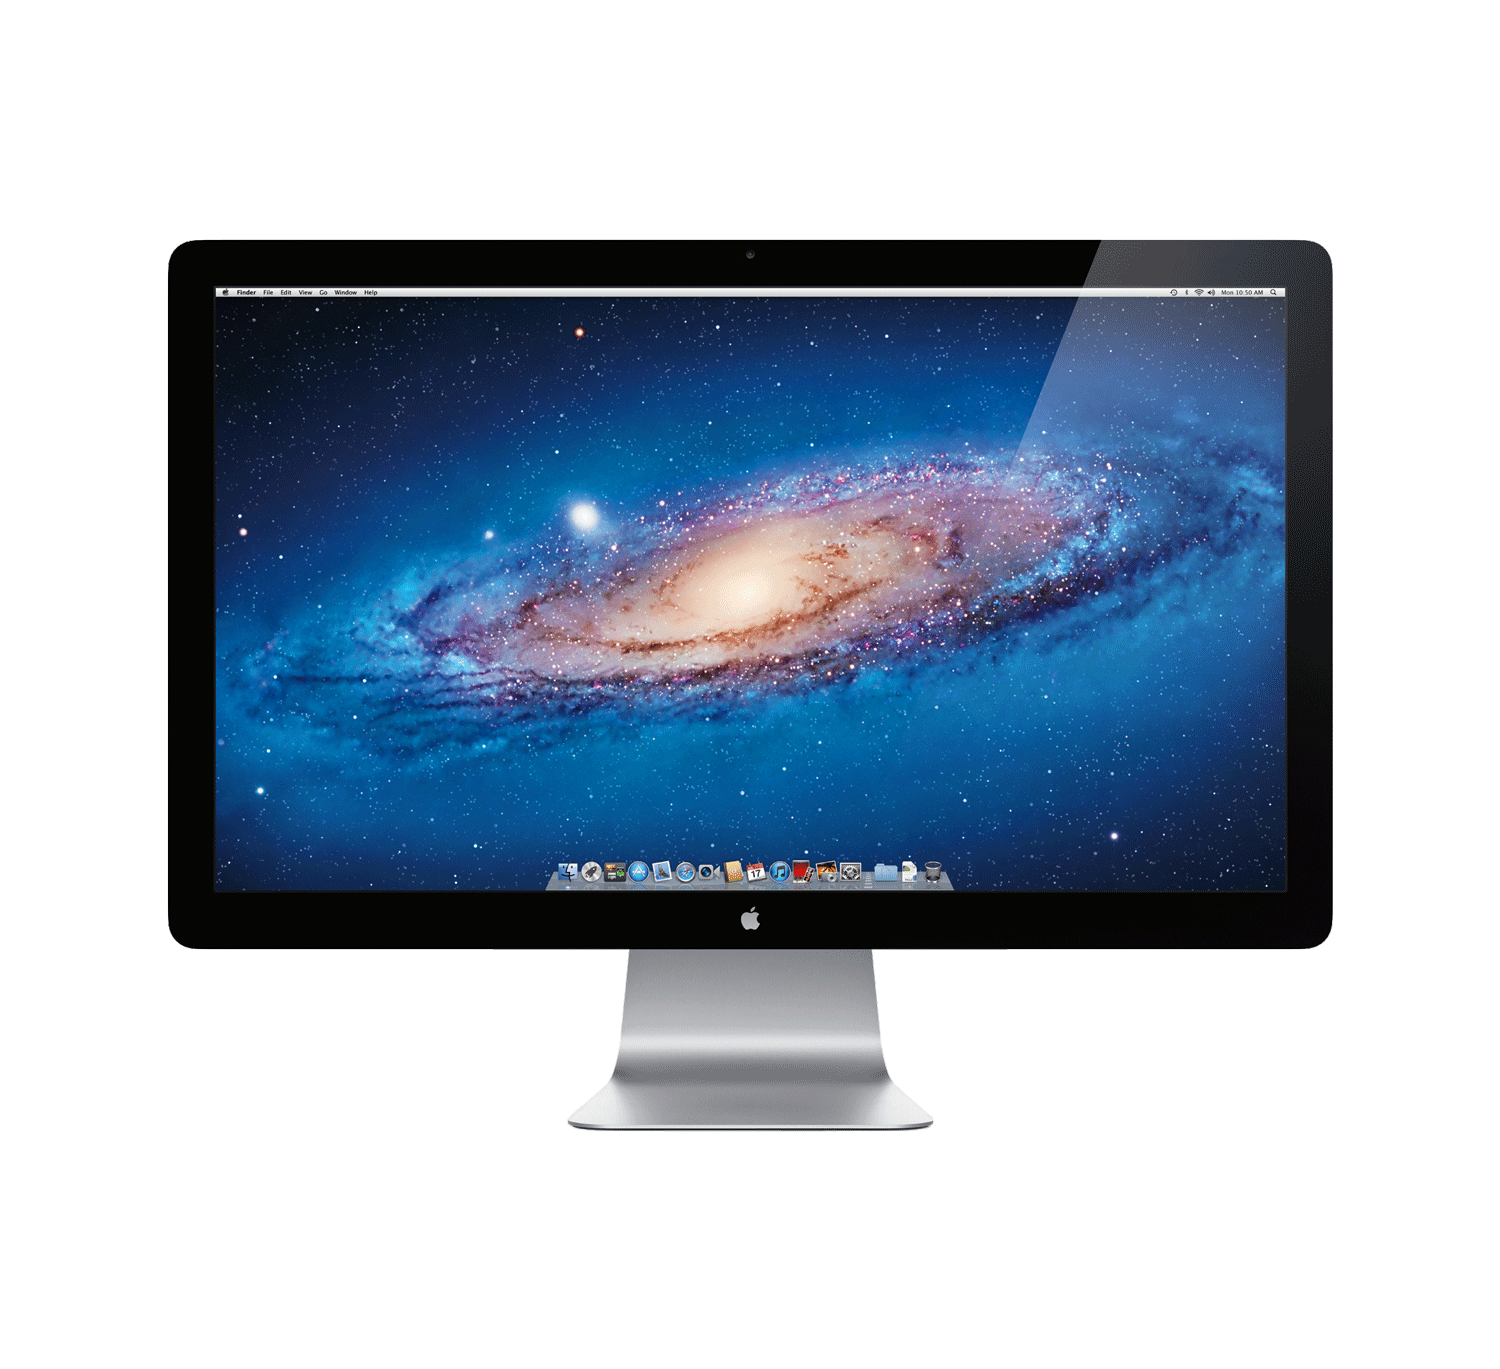 apple thunderbolt display 27 g nstig kaufen 27 30. Black Bedroom Furniture Sets. Home Design Ideas